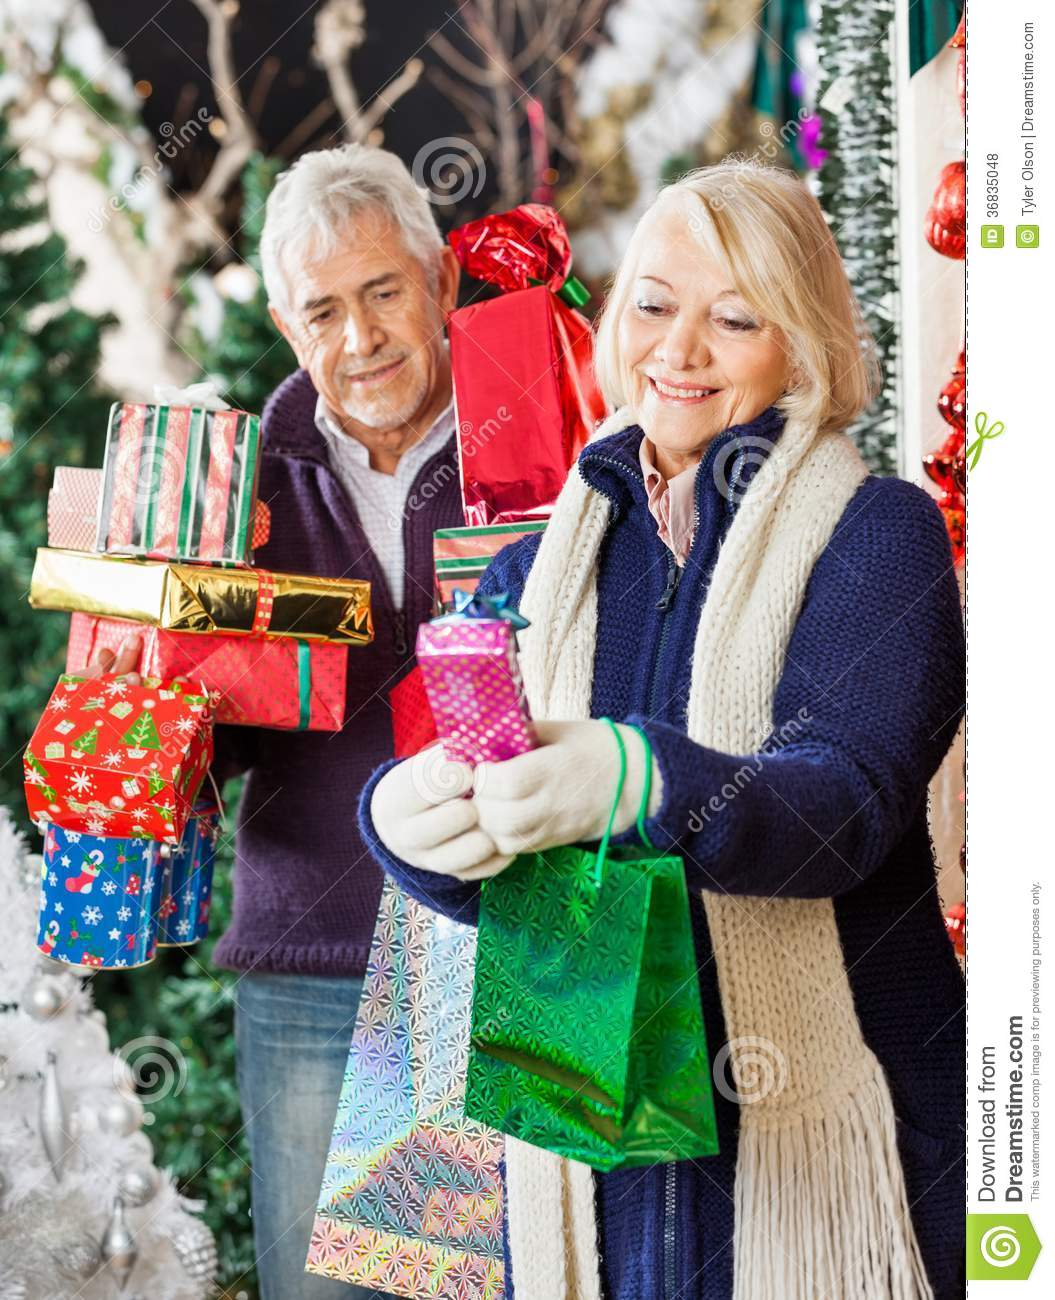 Woman Shopping Christmas Presents With Man Royalty Free